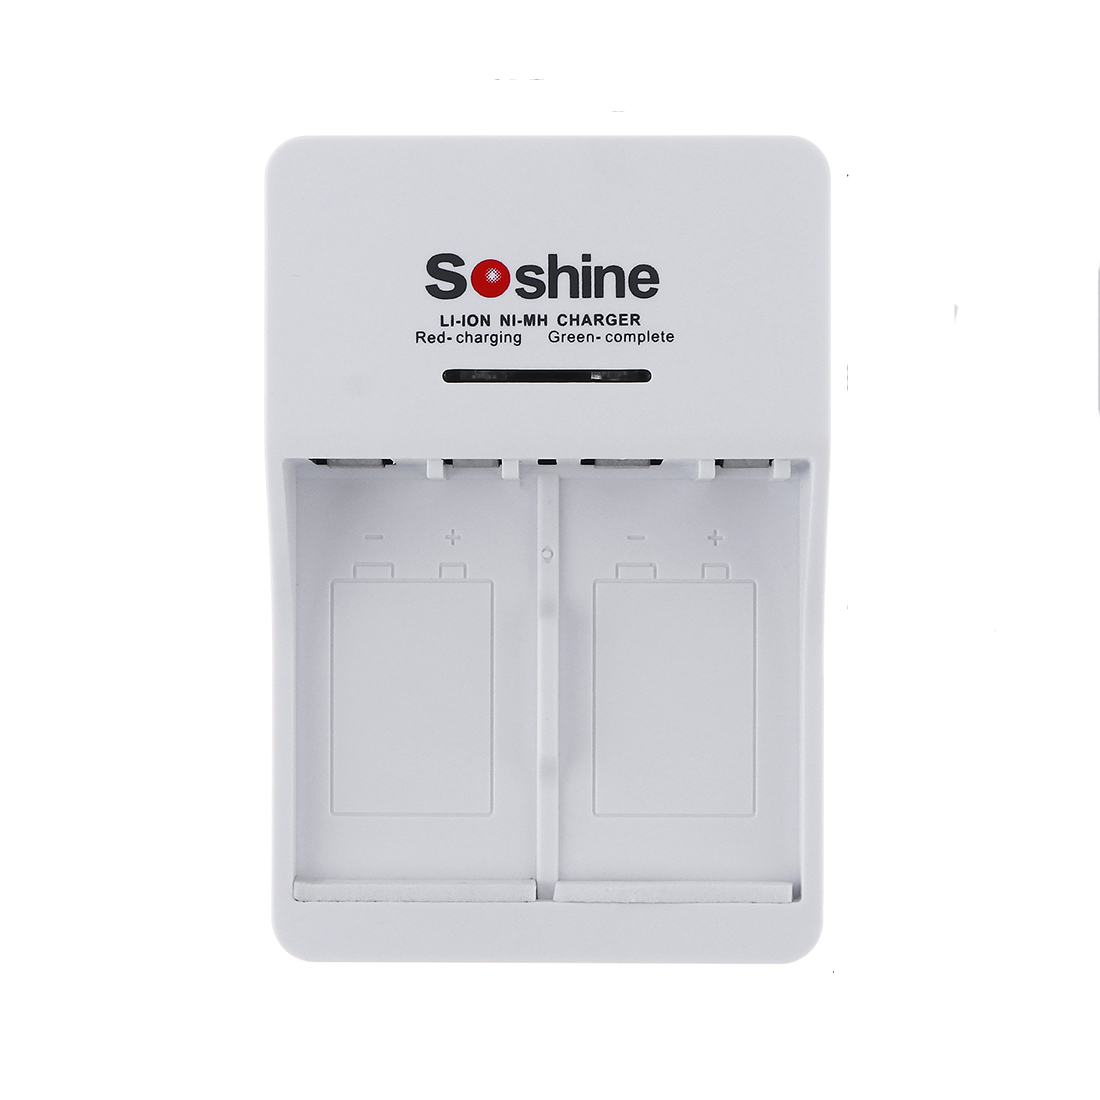 Soshine V1 9V Li-ion Ni-MH 2 Slot Rechargeable Battery Charger